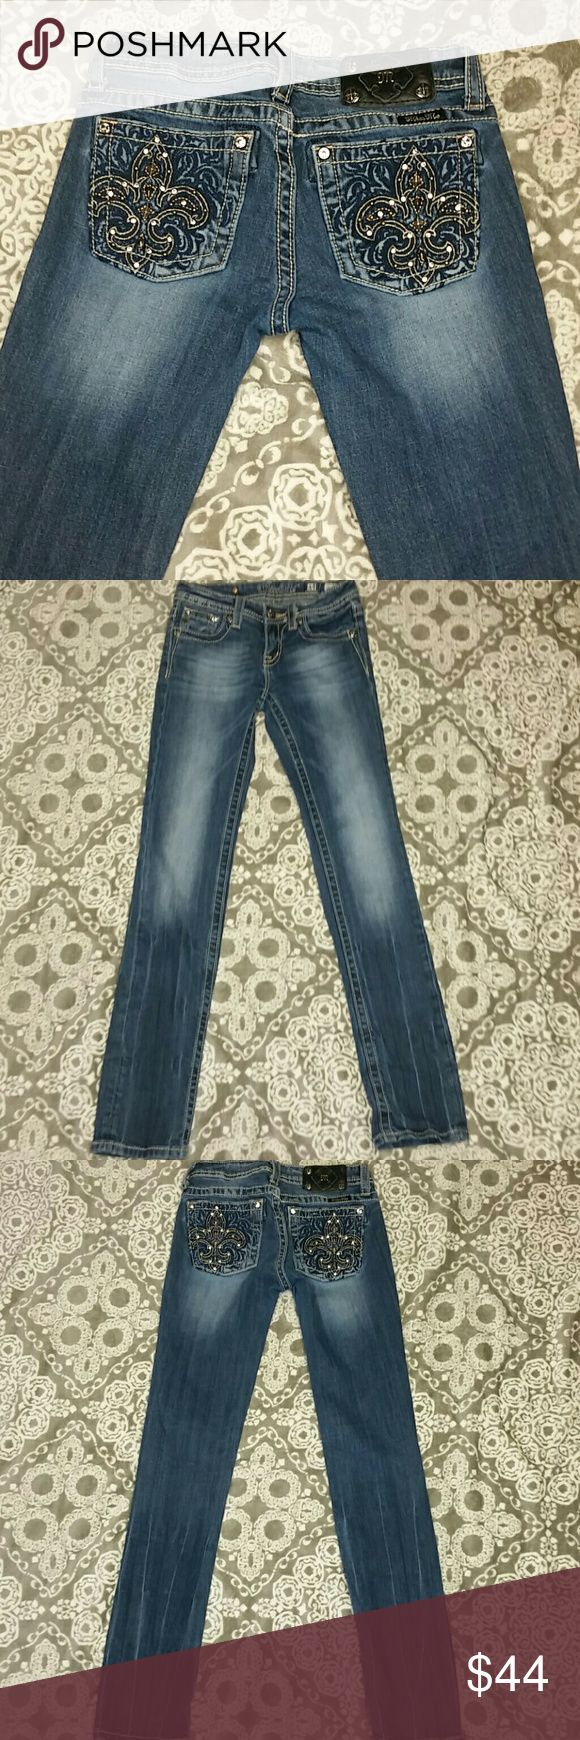 """Girls Miss Me Jeans Sz 14 Skinny Distressed Girls Miss Me Denim Distressed Jeans  Sz 14 Inseam from crotch to bottom: 31"""" Leg Opening: 5.5"""" Waistline: 12"""" 5 pockets, lower front rise and all studs are on. Great Condition. The lower legs have a distressed look to them that I believe is designed that way. PLEASE ask any questions. Back bottoms in excellent condition. Miss Me Bottoms Jeans"""